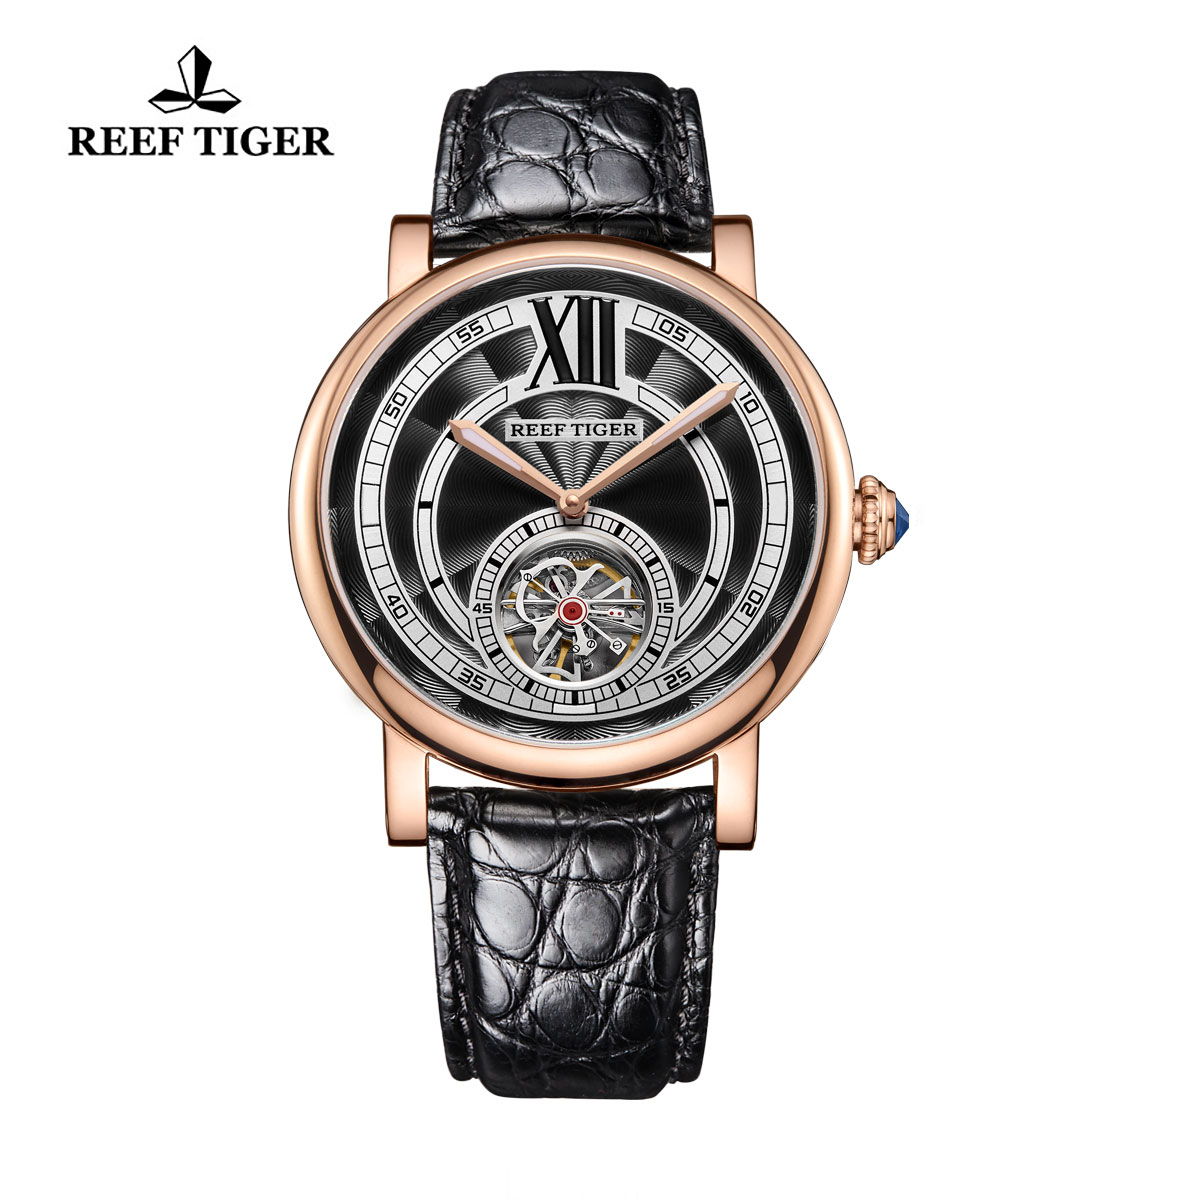 Reef Tiger Royal Crown Luxury Tourbillon Watches Rose Gold Blue Crystal Crown Alligator Strap RGA192